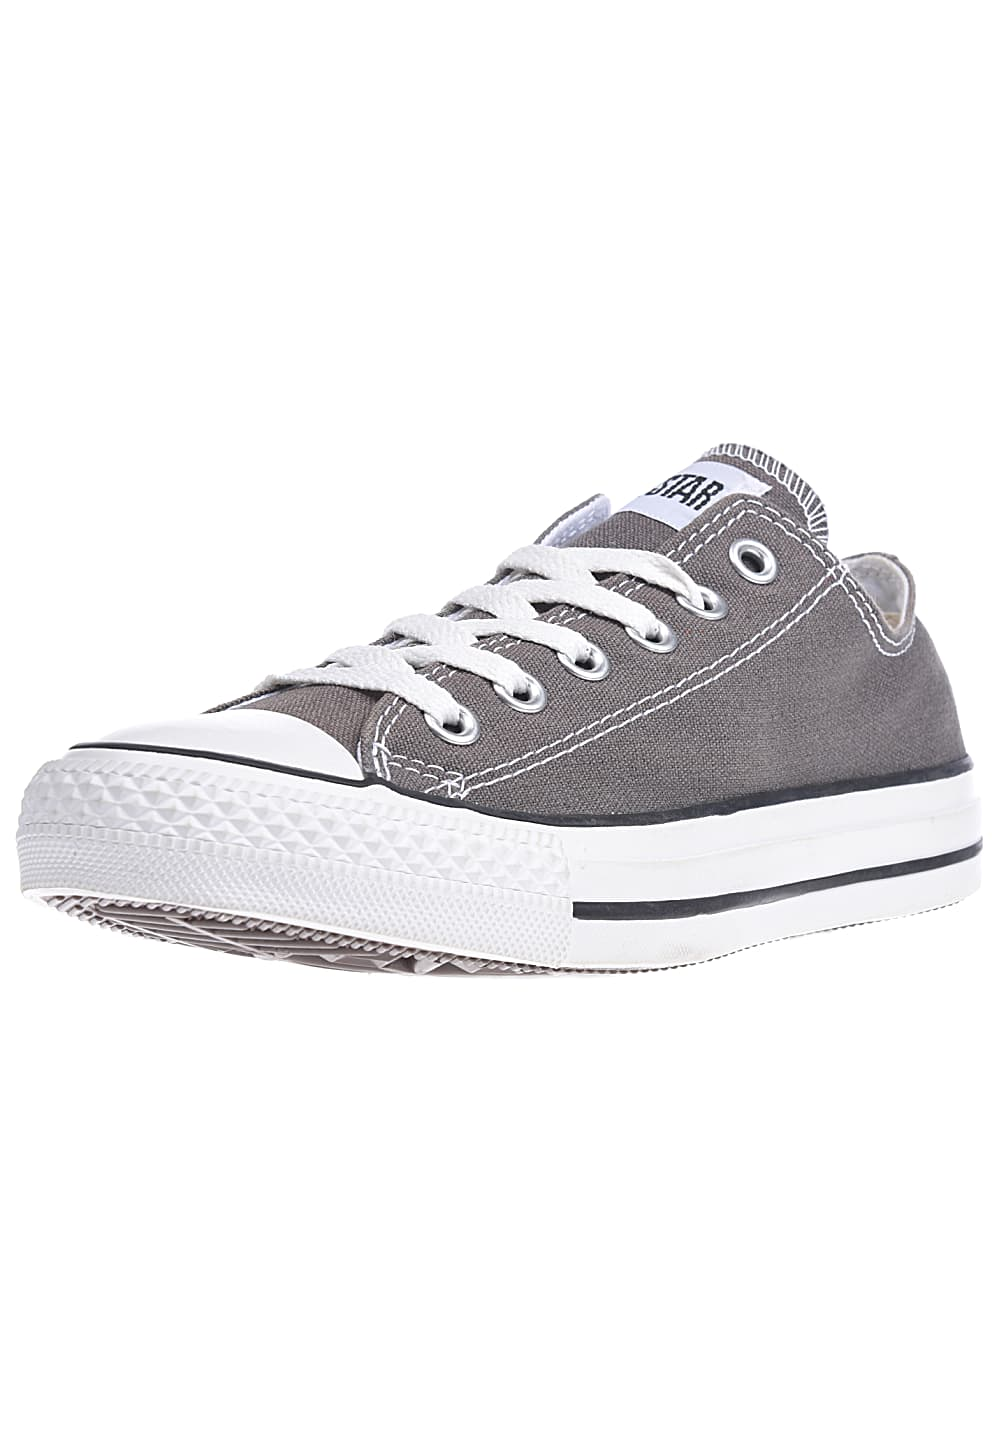 Converse All Star Ox Low Grau Online Kaufen Converse